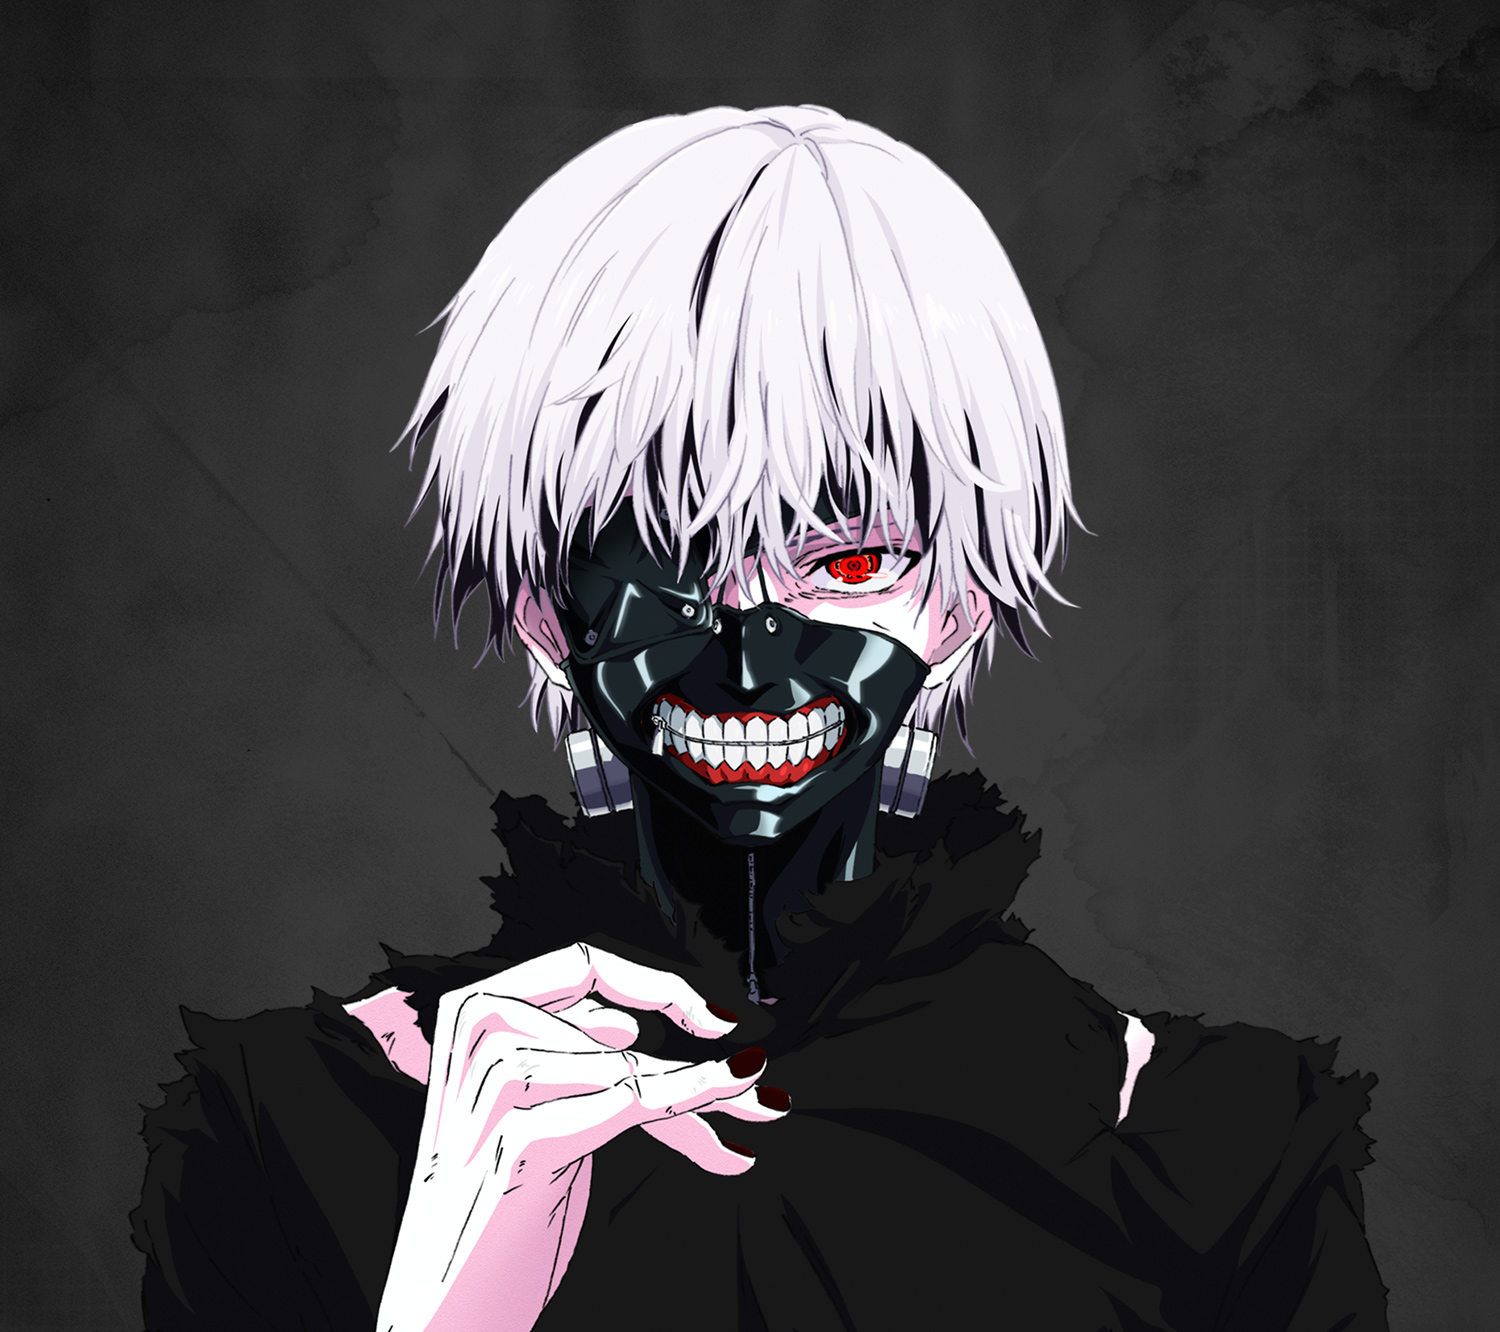 Live Action 'Tokyo Ghoul' In The Works